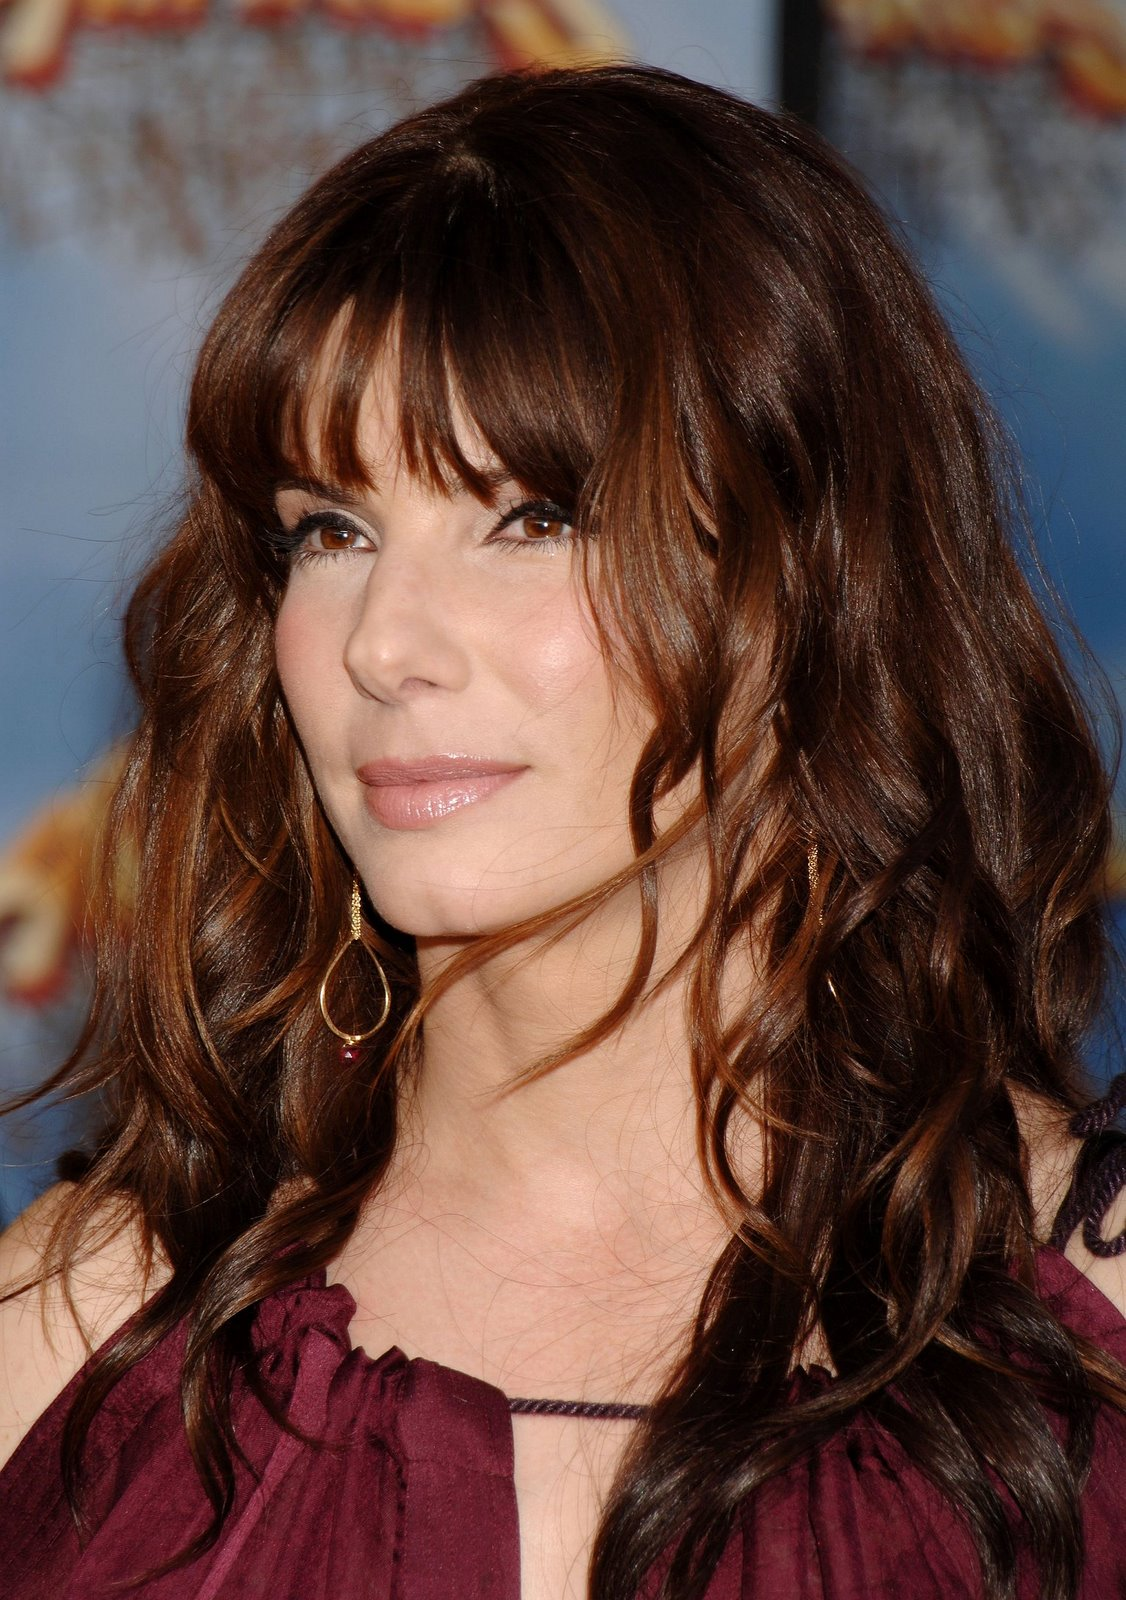 Sandra-bullock-hairstyles-40 - My New Hair: www.mynewhair.info/celebrity-hair/sandra-bullock/sandra-bullock...